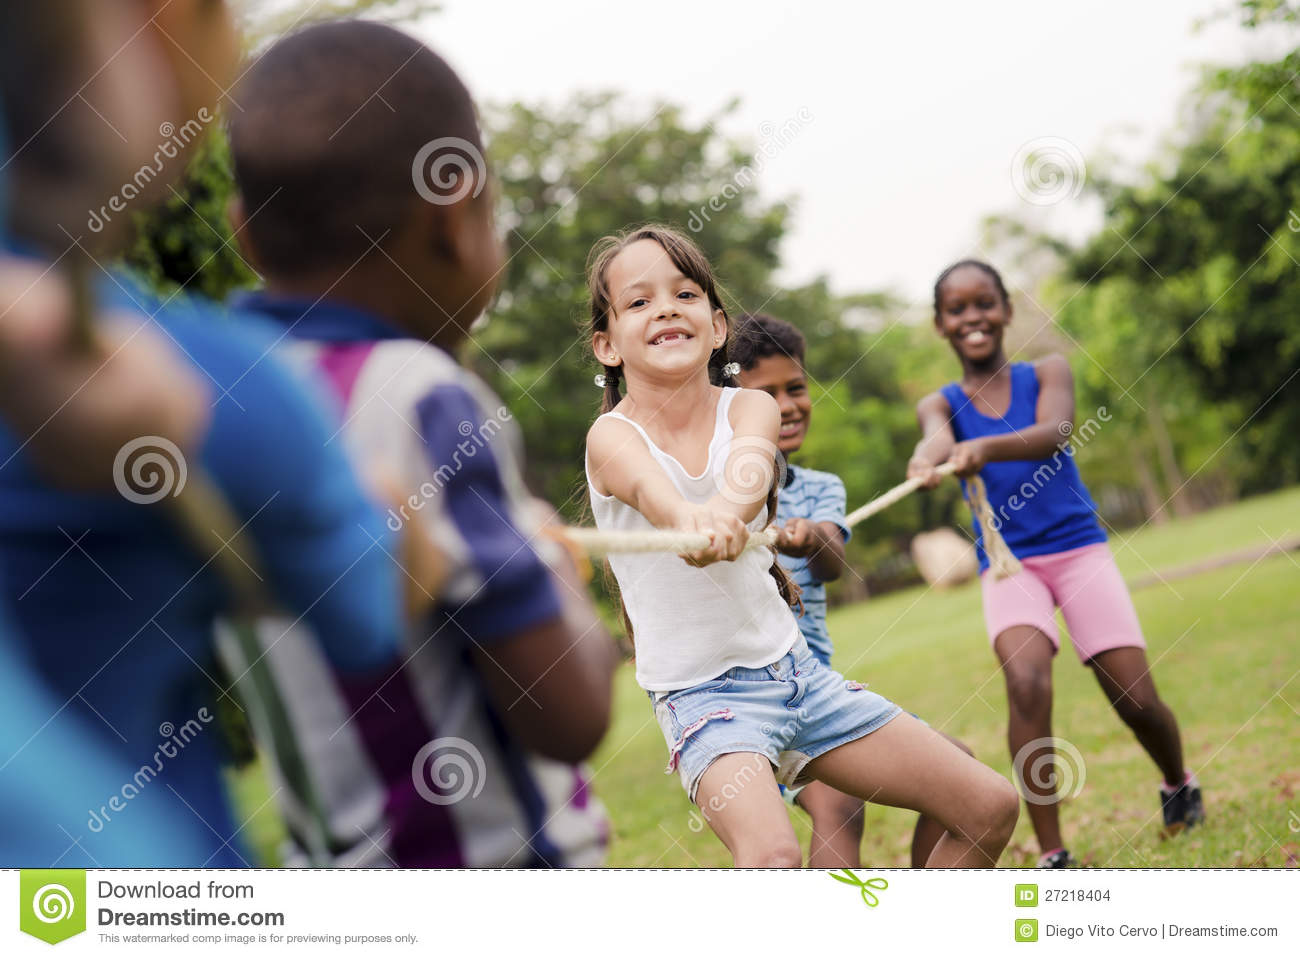 School children playing tug of war with rope